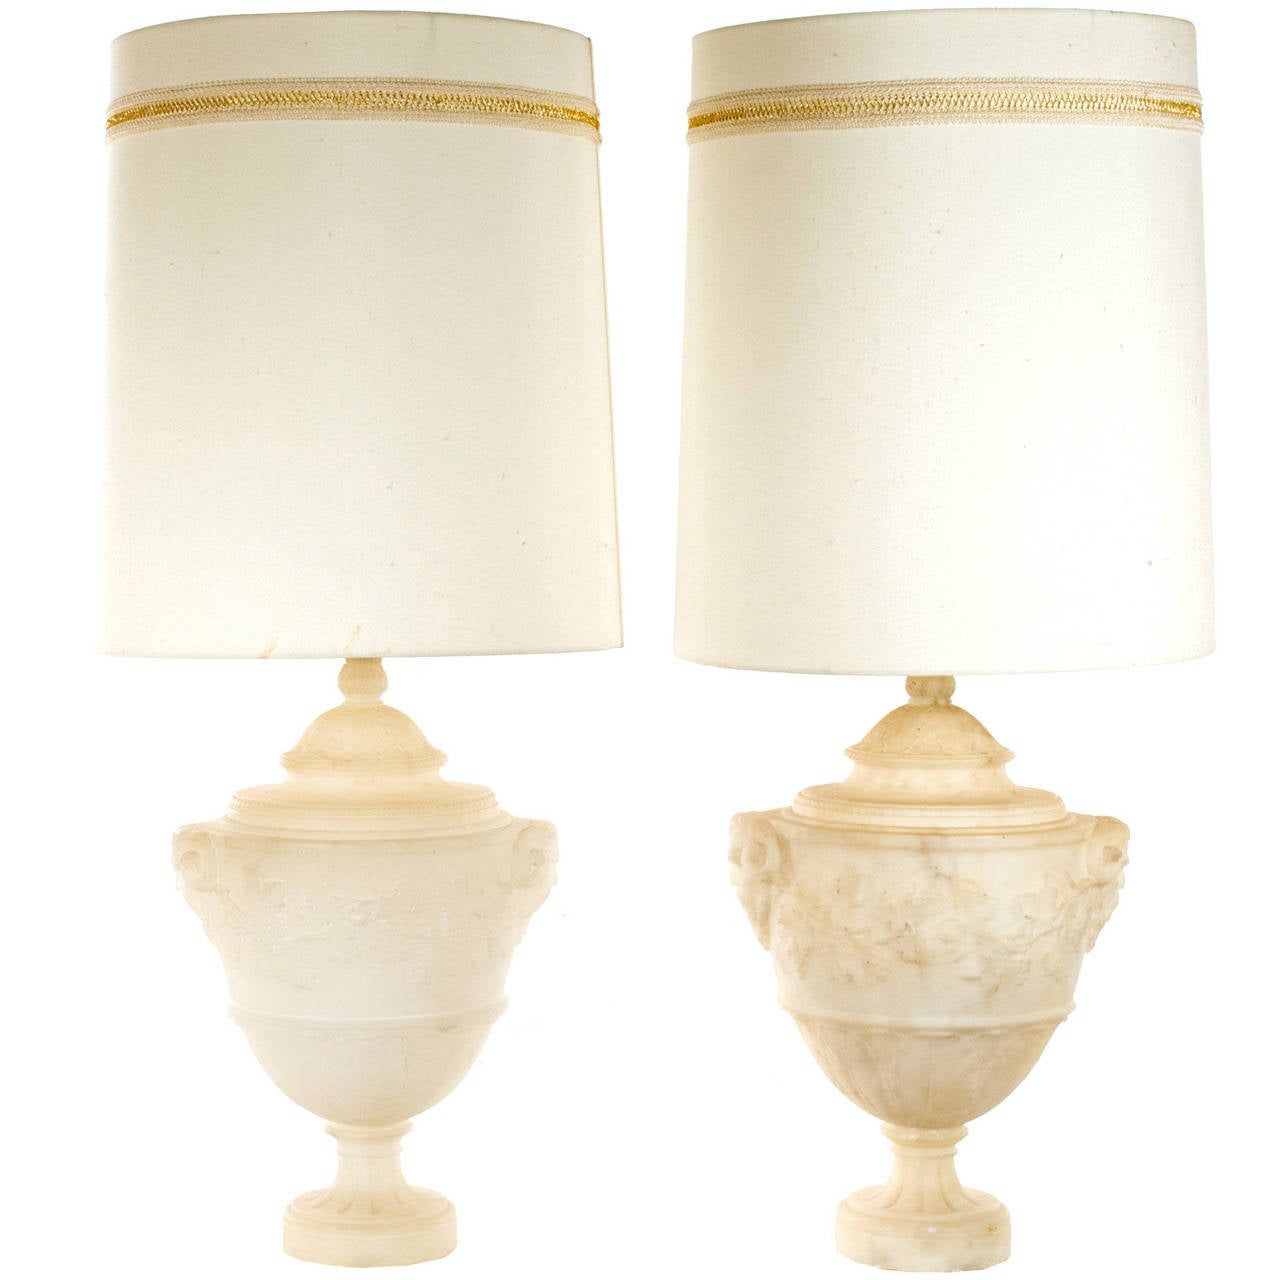 Pair of midcentury carved italian alabaster table lamps at 1stdibs pair of midcentury carved italian alabaster table lamps for sale mozeypictures Choice Image